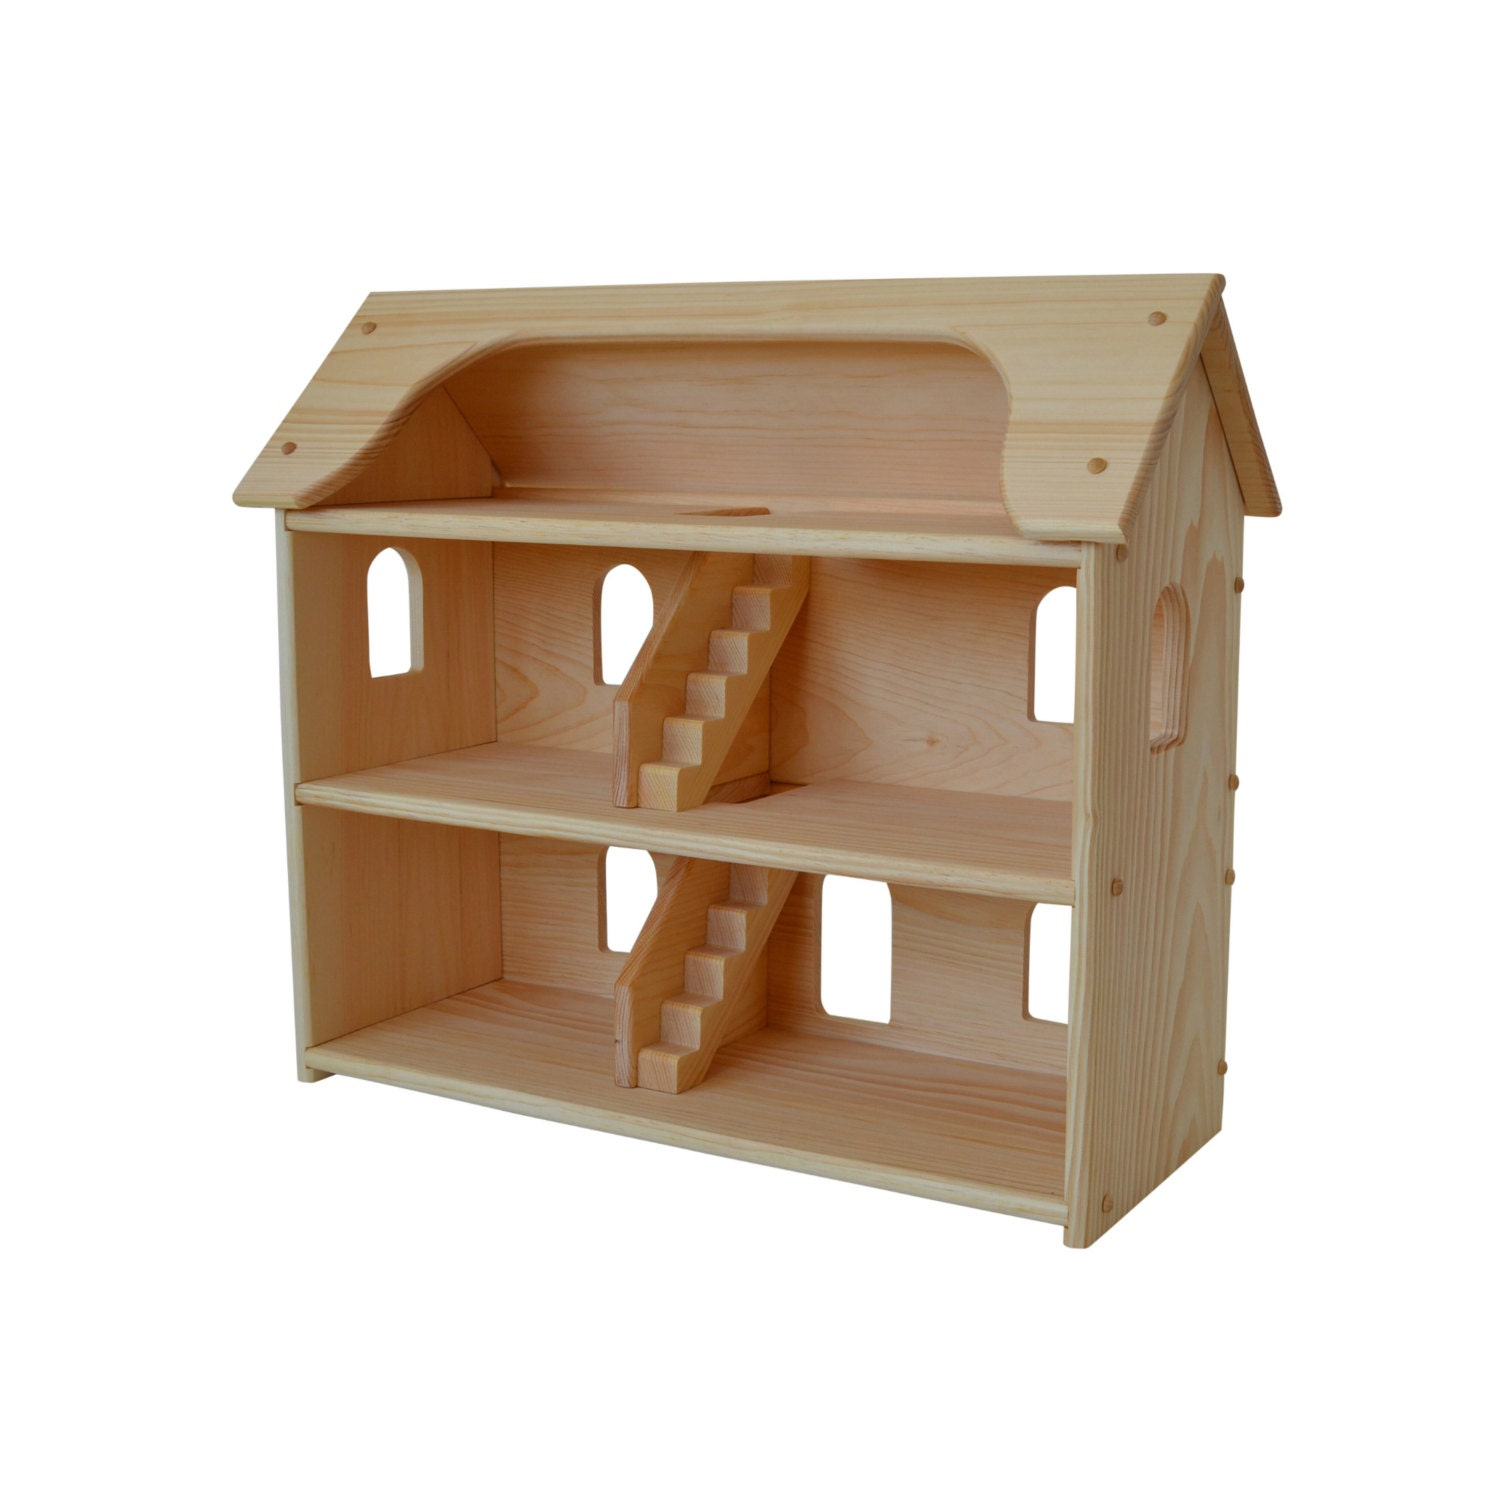 Handcrafted natural wooden toy dollhouse waldorf Dollhouse wooden furniture